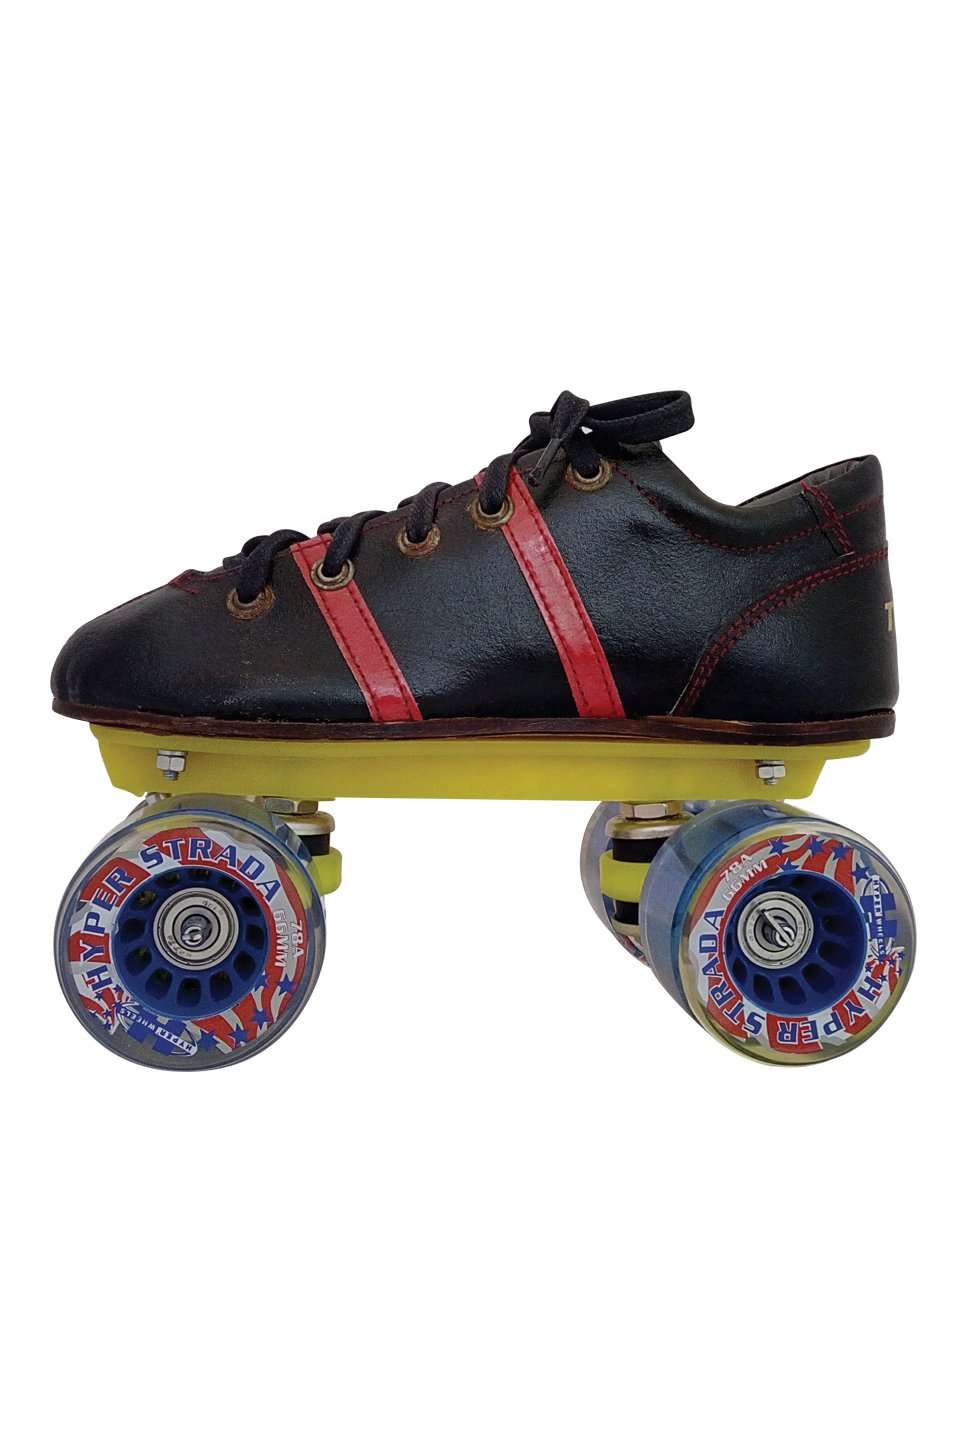 Roller skating shoes in chennai - Buy Rollar Skate With Hyper Strada Blue Wheels For Kids Size Uk 7 Online At Low Prices In India Amazon In